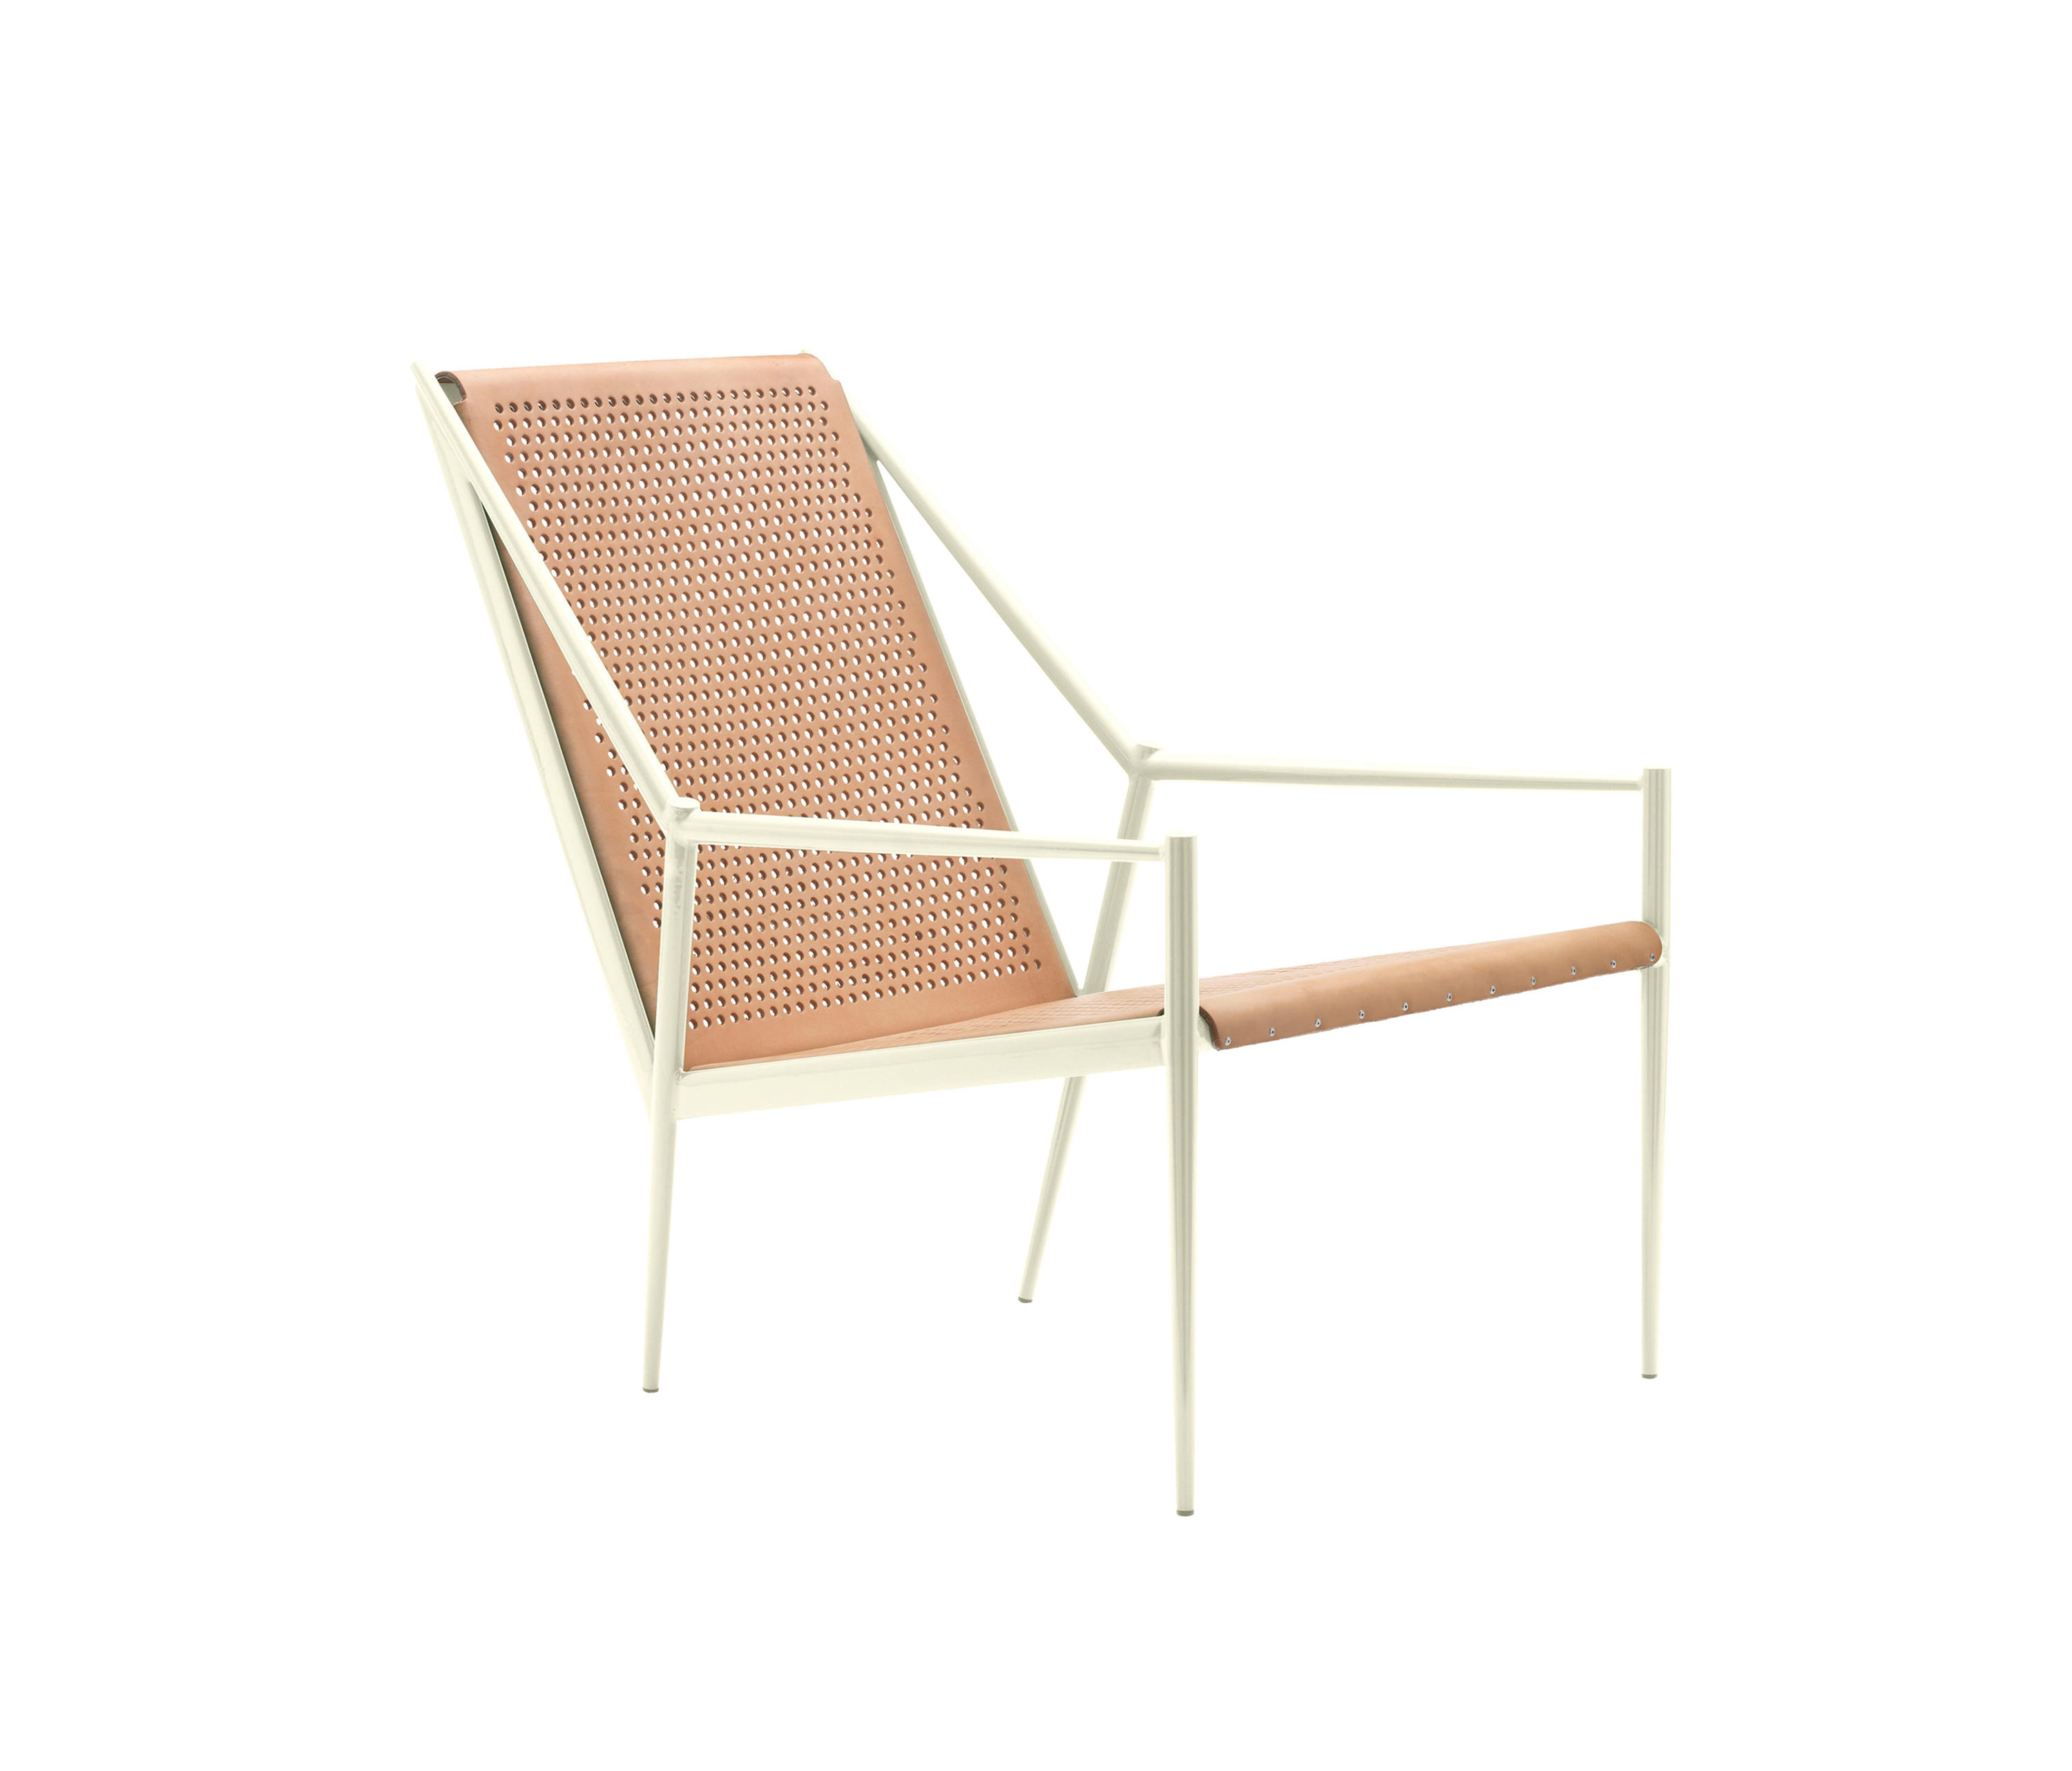 acciaio lounge  lounge chairs from cappellini  architonic - acciaio lounge by cappellini  lounge chairs